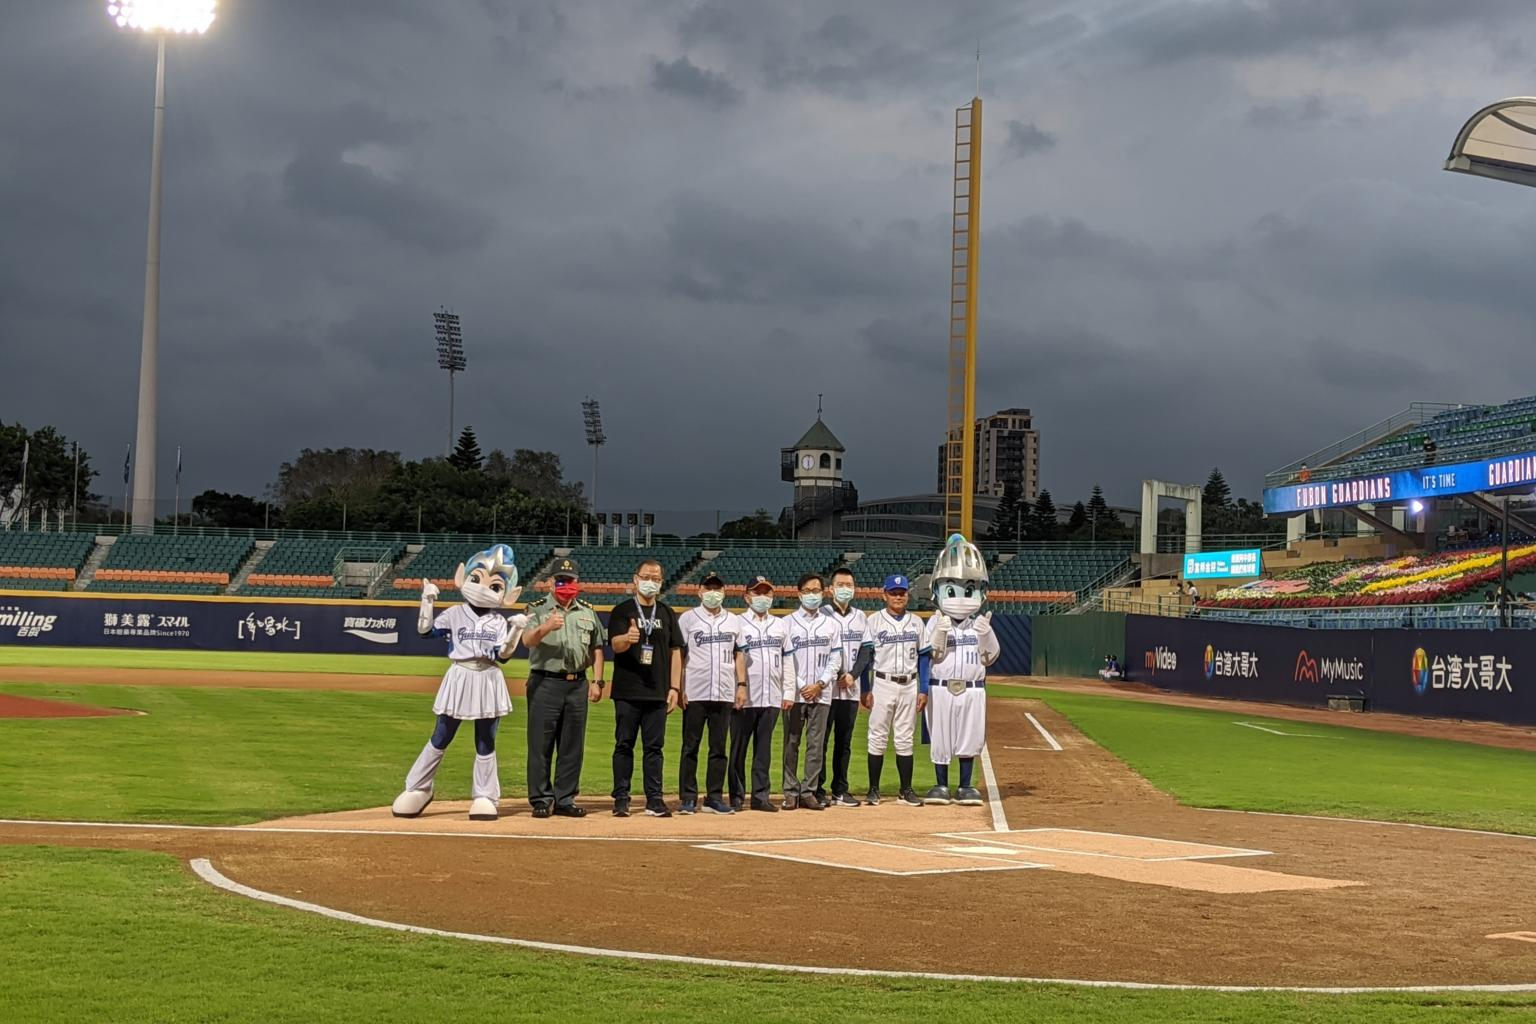 1000 fans in taiwan stadium get to watch 2020s first baseball game in the world live - AUKUS: The View from ASEAN